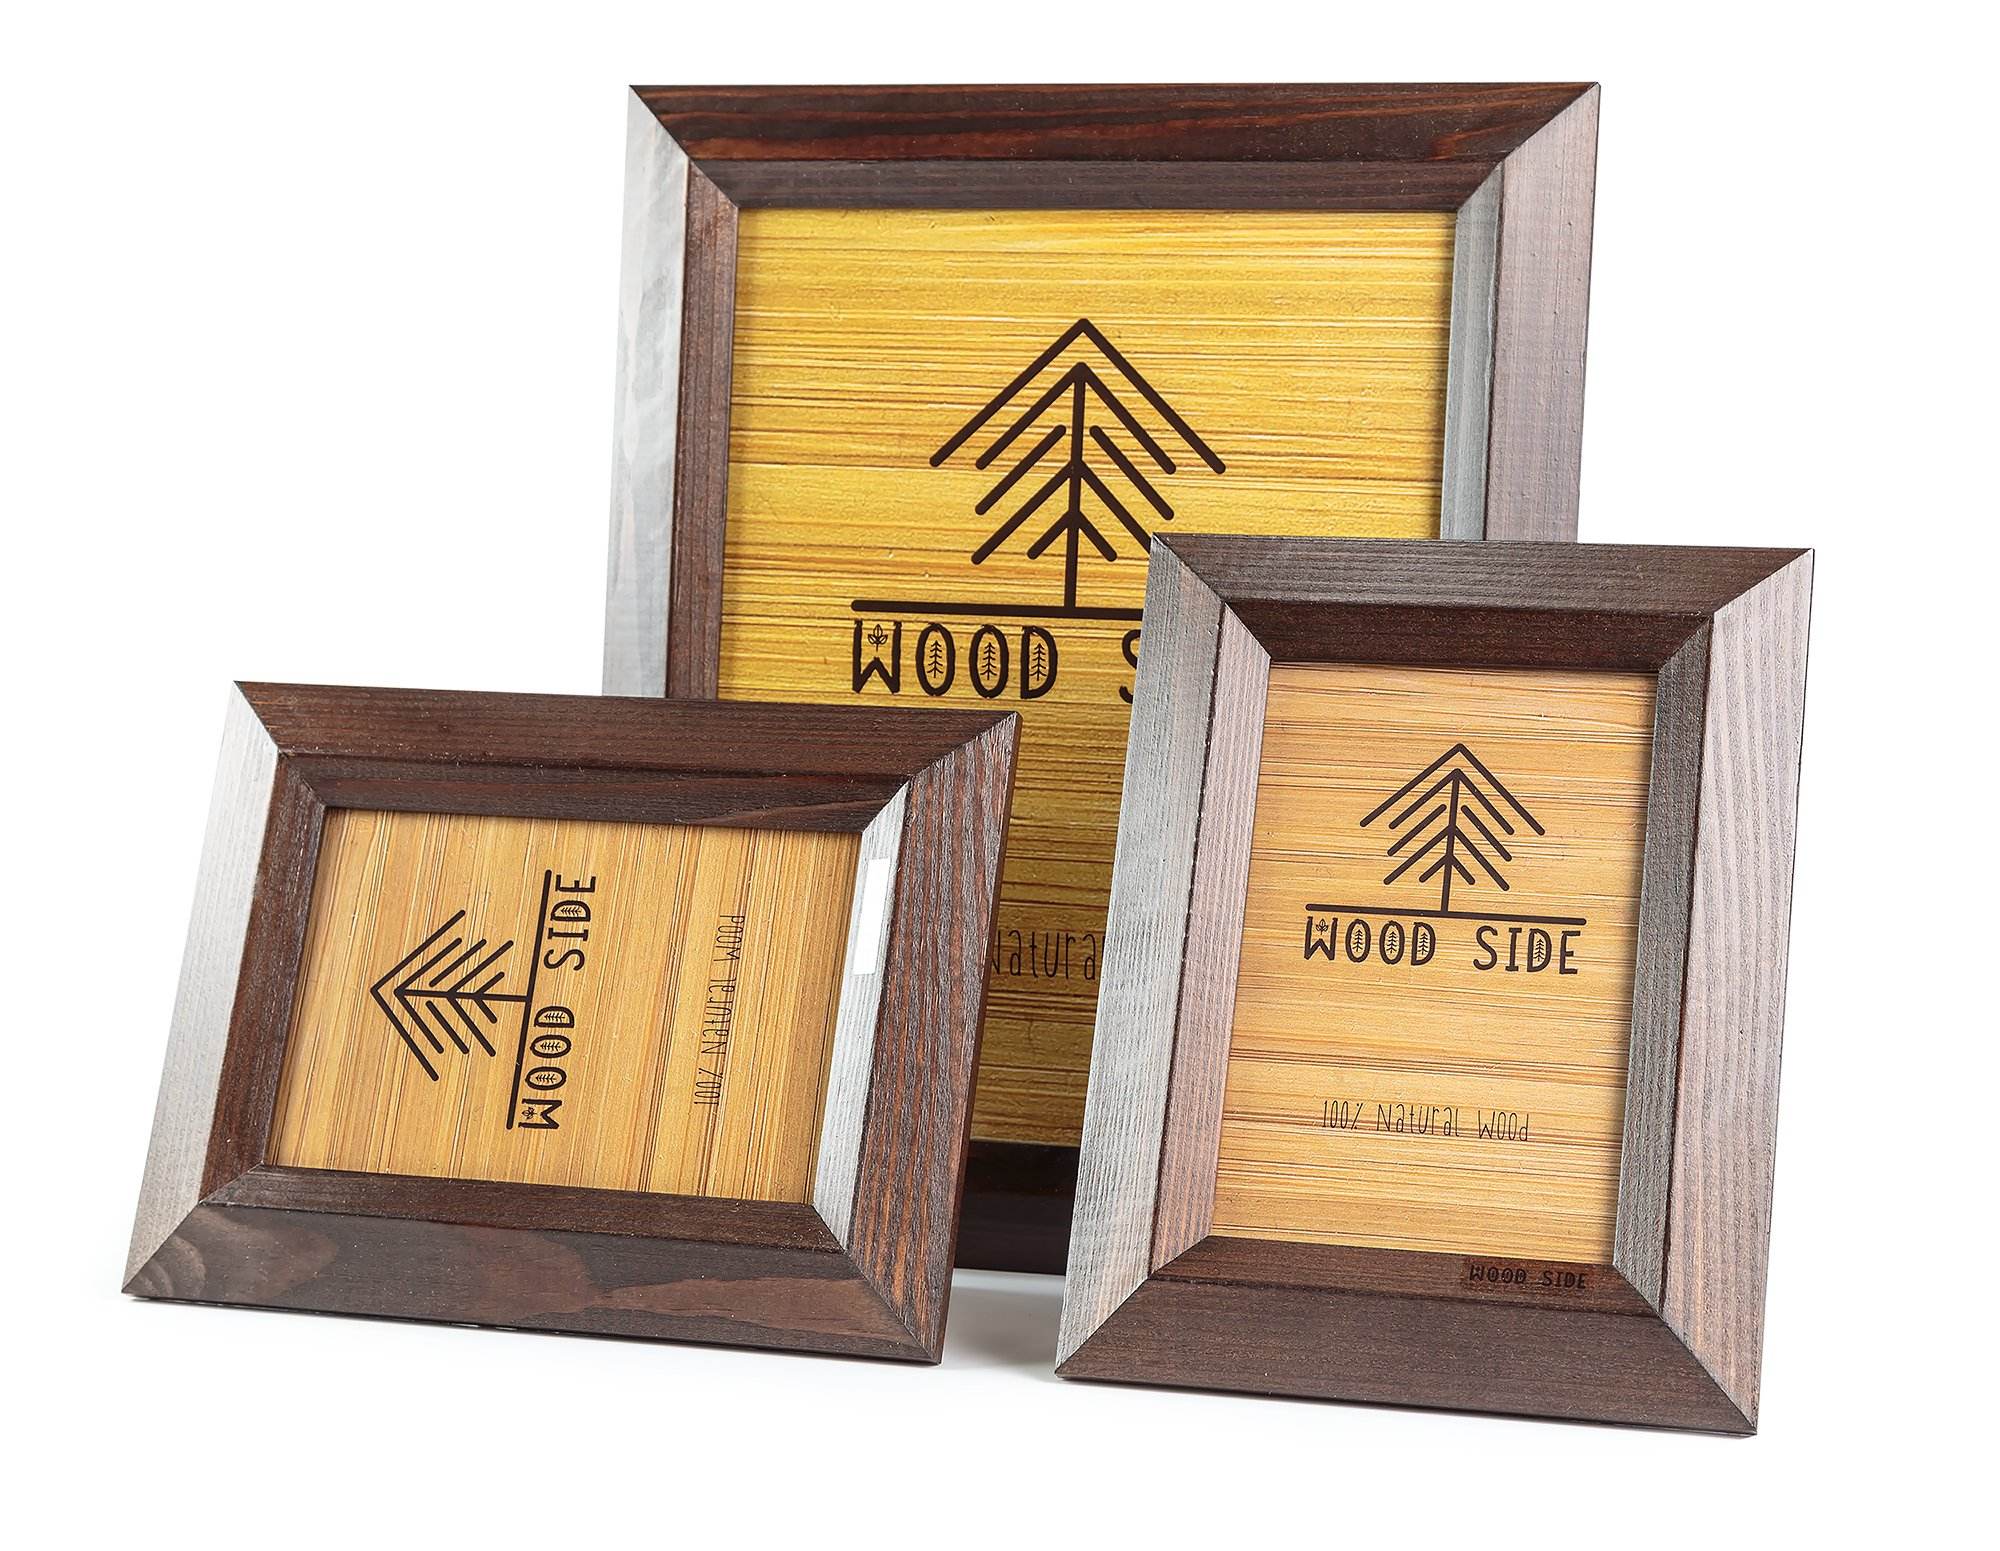 8x10 Wooden Picture Frames Brown - Pack of Two 4x6 inch and one 8x10 Rustic Picture Frame Made of Solid Wood High Definition Glass for Table Top Display and Wall mounting Photo Frame Walnut by Wood Side